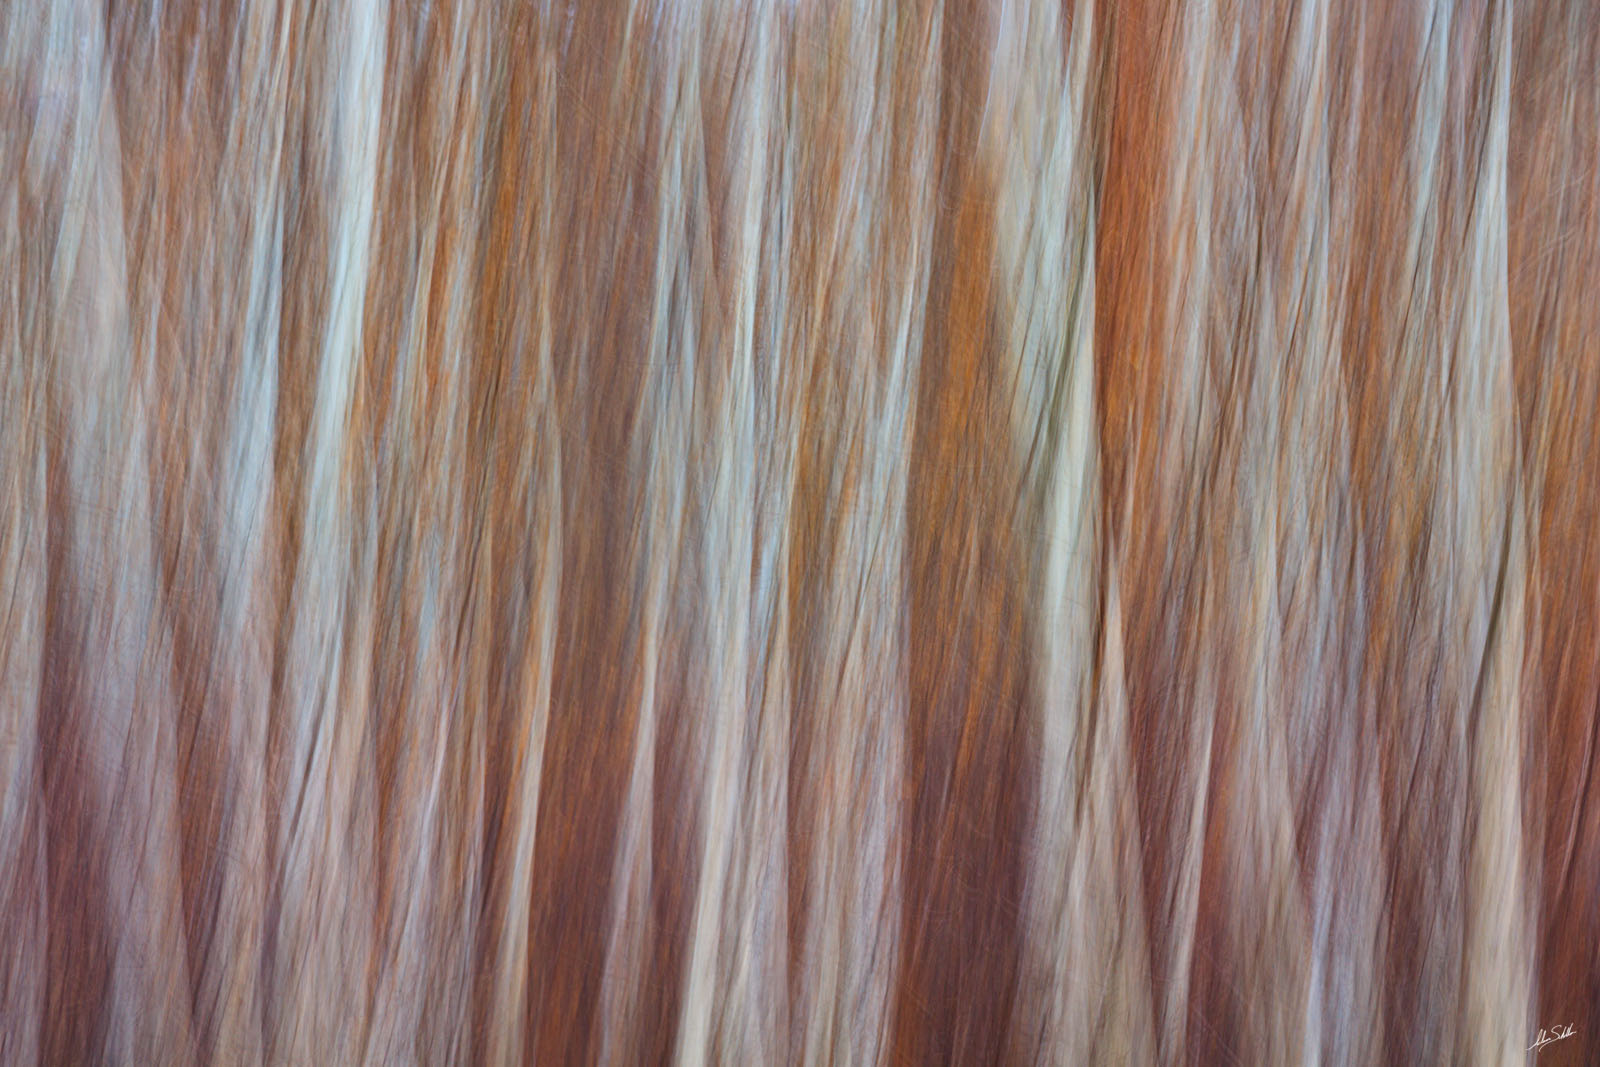 Abstract, Art, Cliff Springs, Forest, Grand Canyon, ICM, Impressionistic, Intentional Camera Movement, North Rim, Pine, Ponderosa, Trees, Walhalla Glades, photo